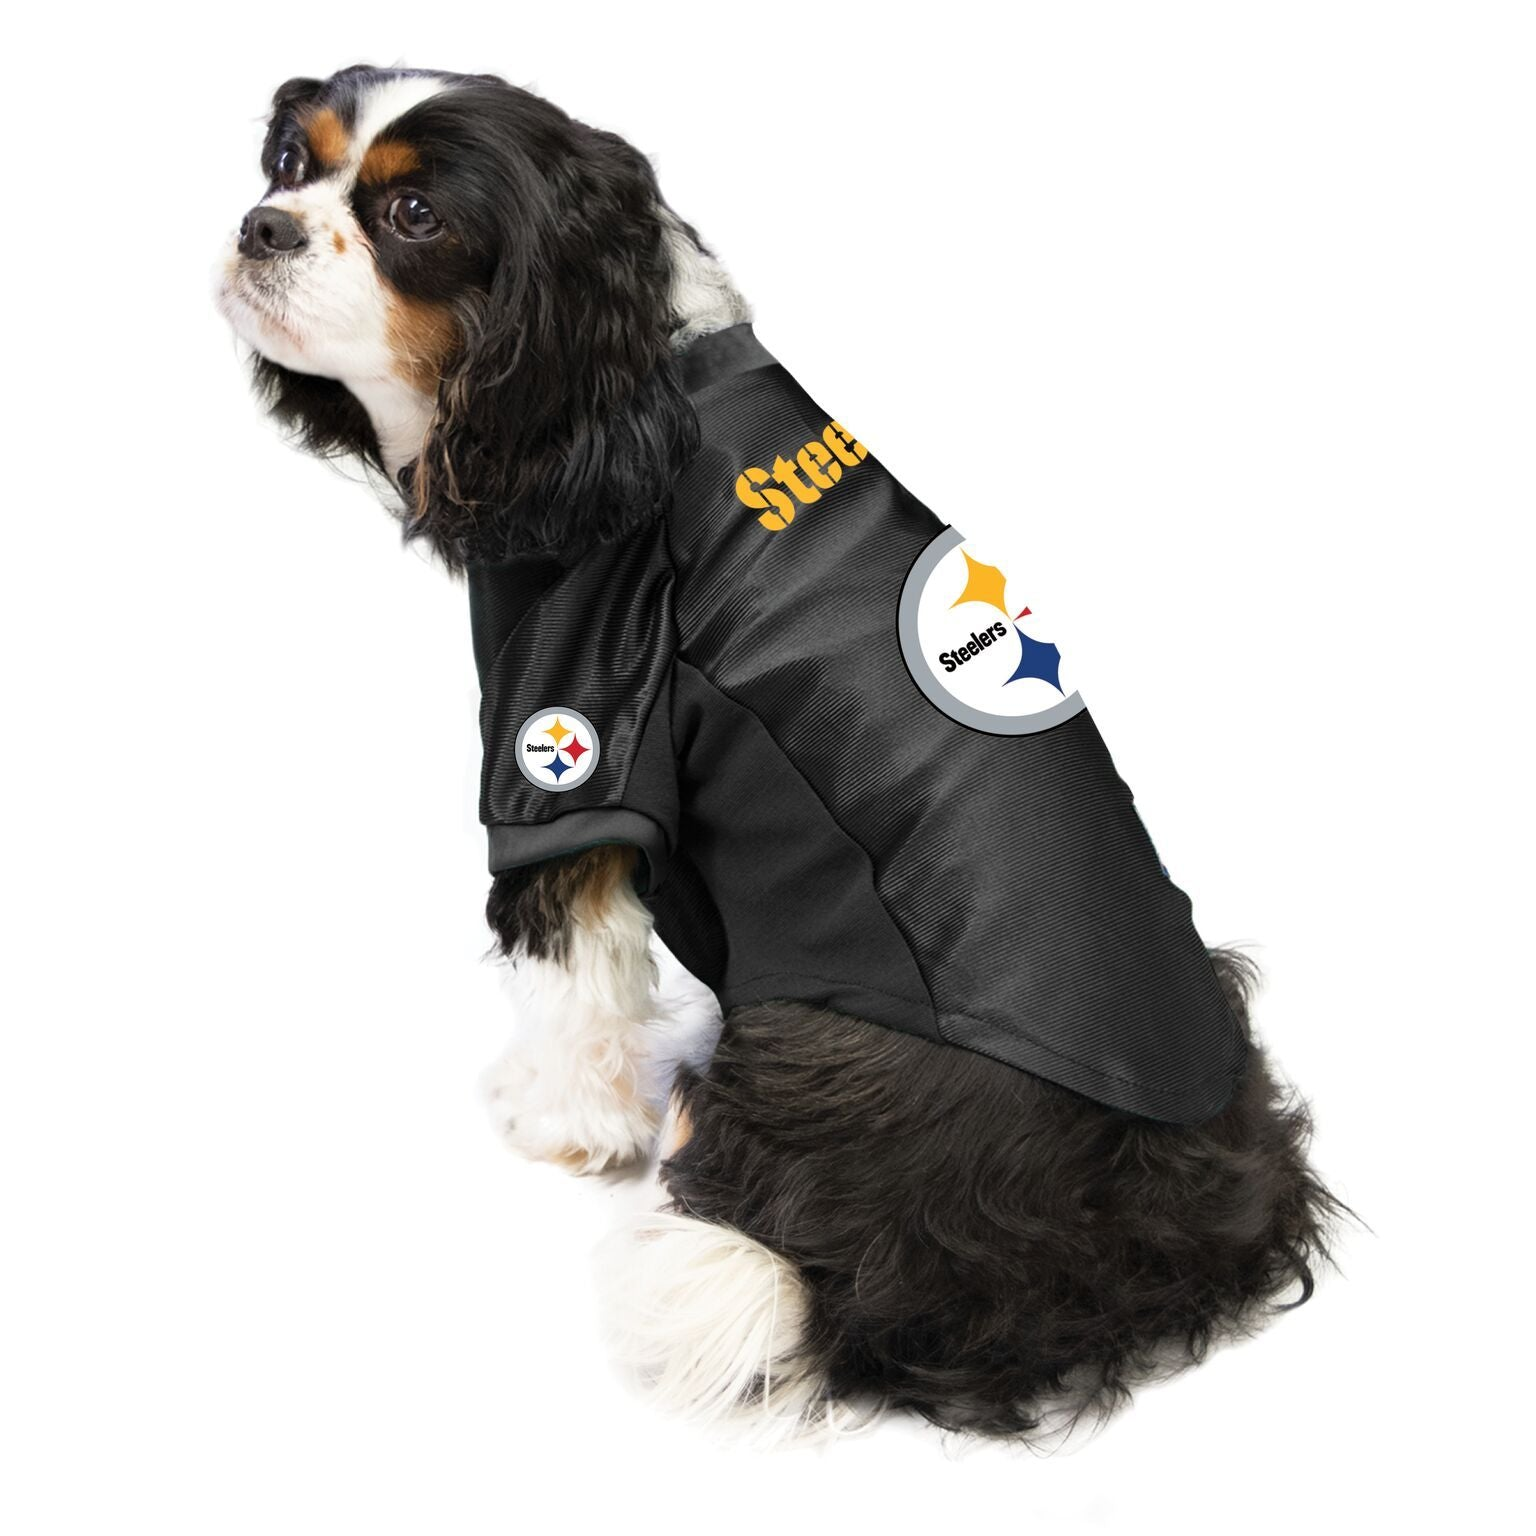 Steelers outfit for dogs